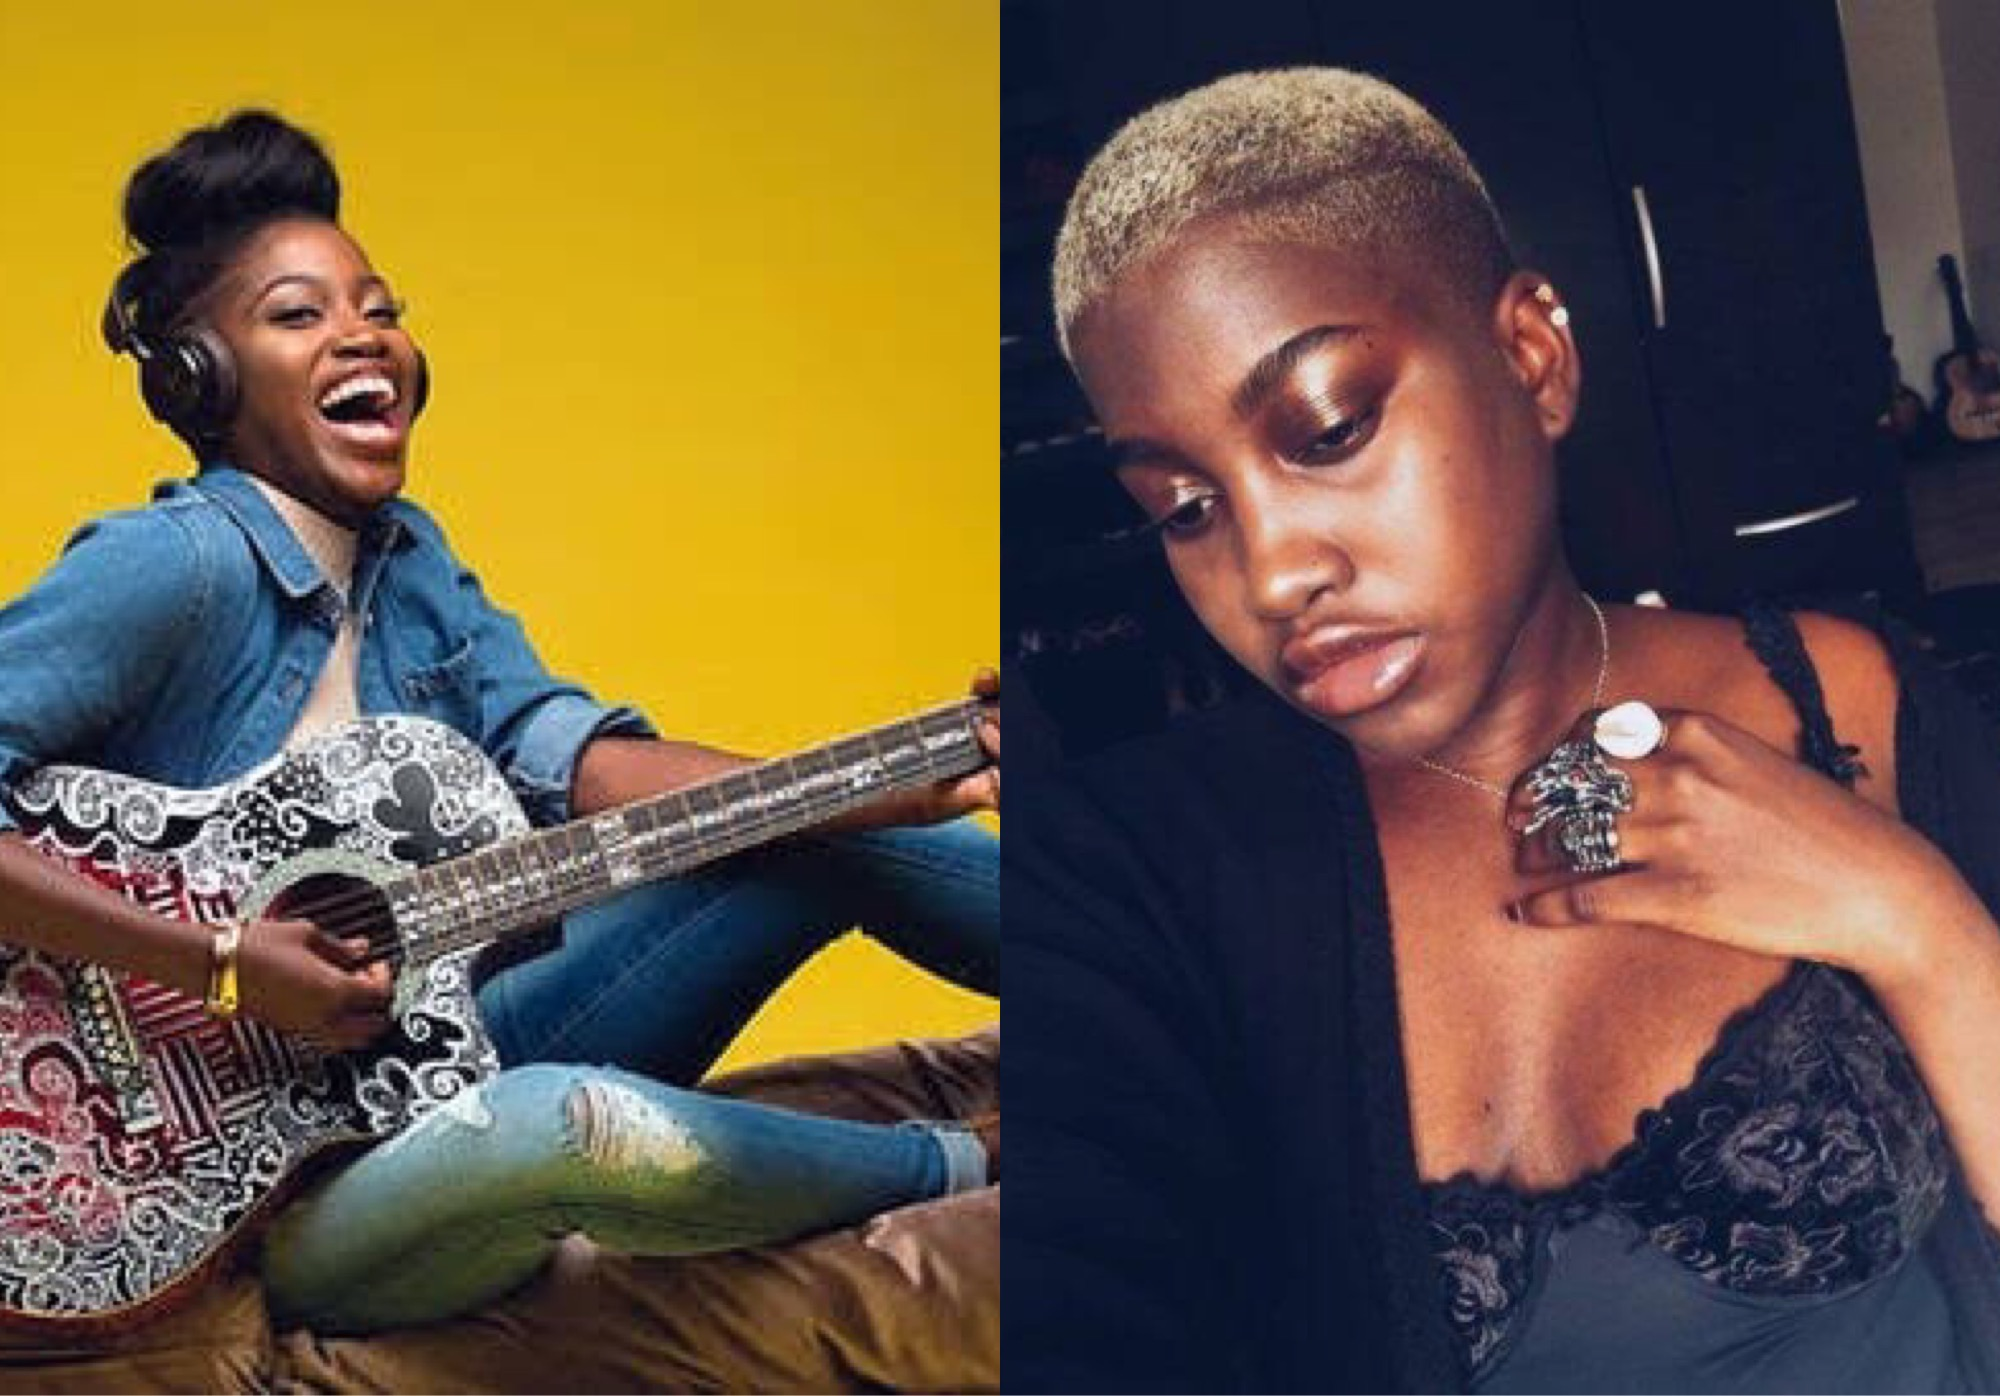 #EndSARS: 'Always Remember That Women And Queer People Go Through Worse' - Singer Temmie Ovwasa